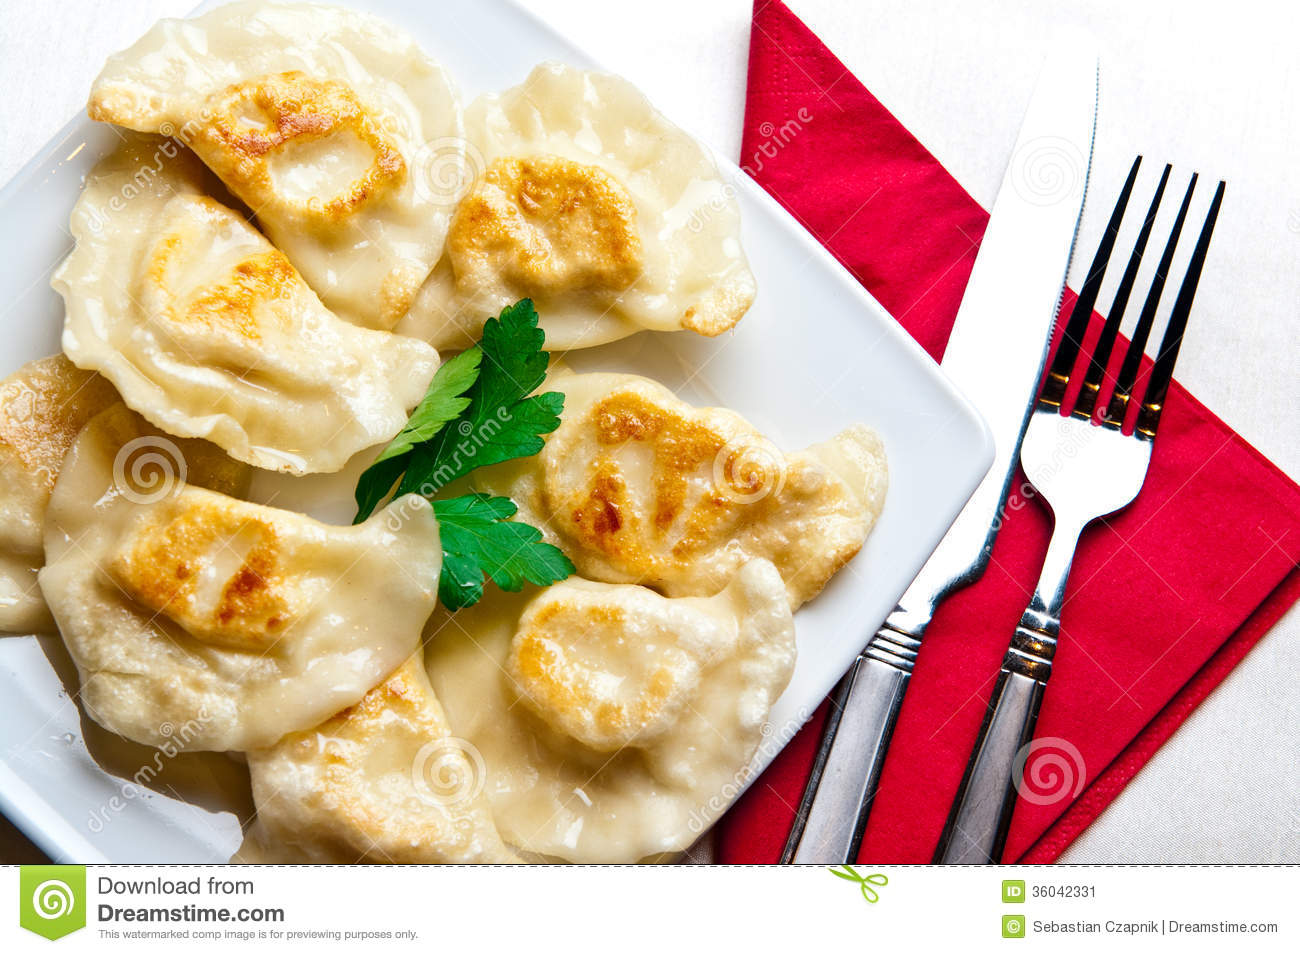 Food from the World: Pierogi